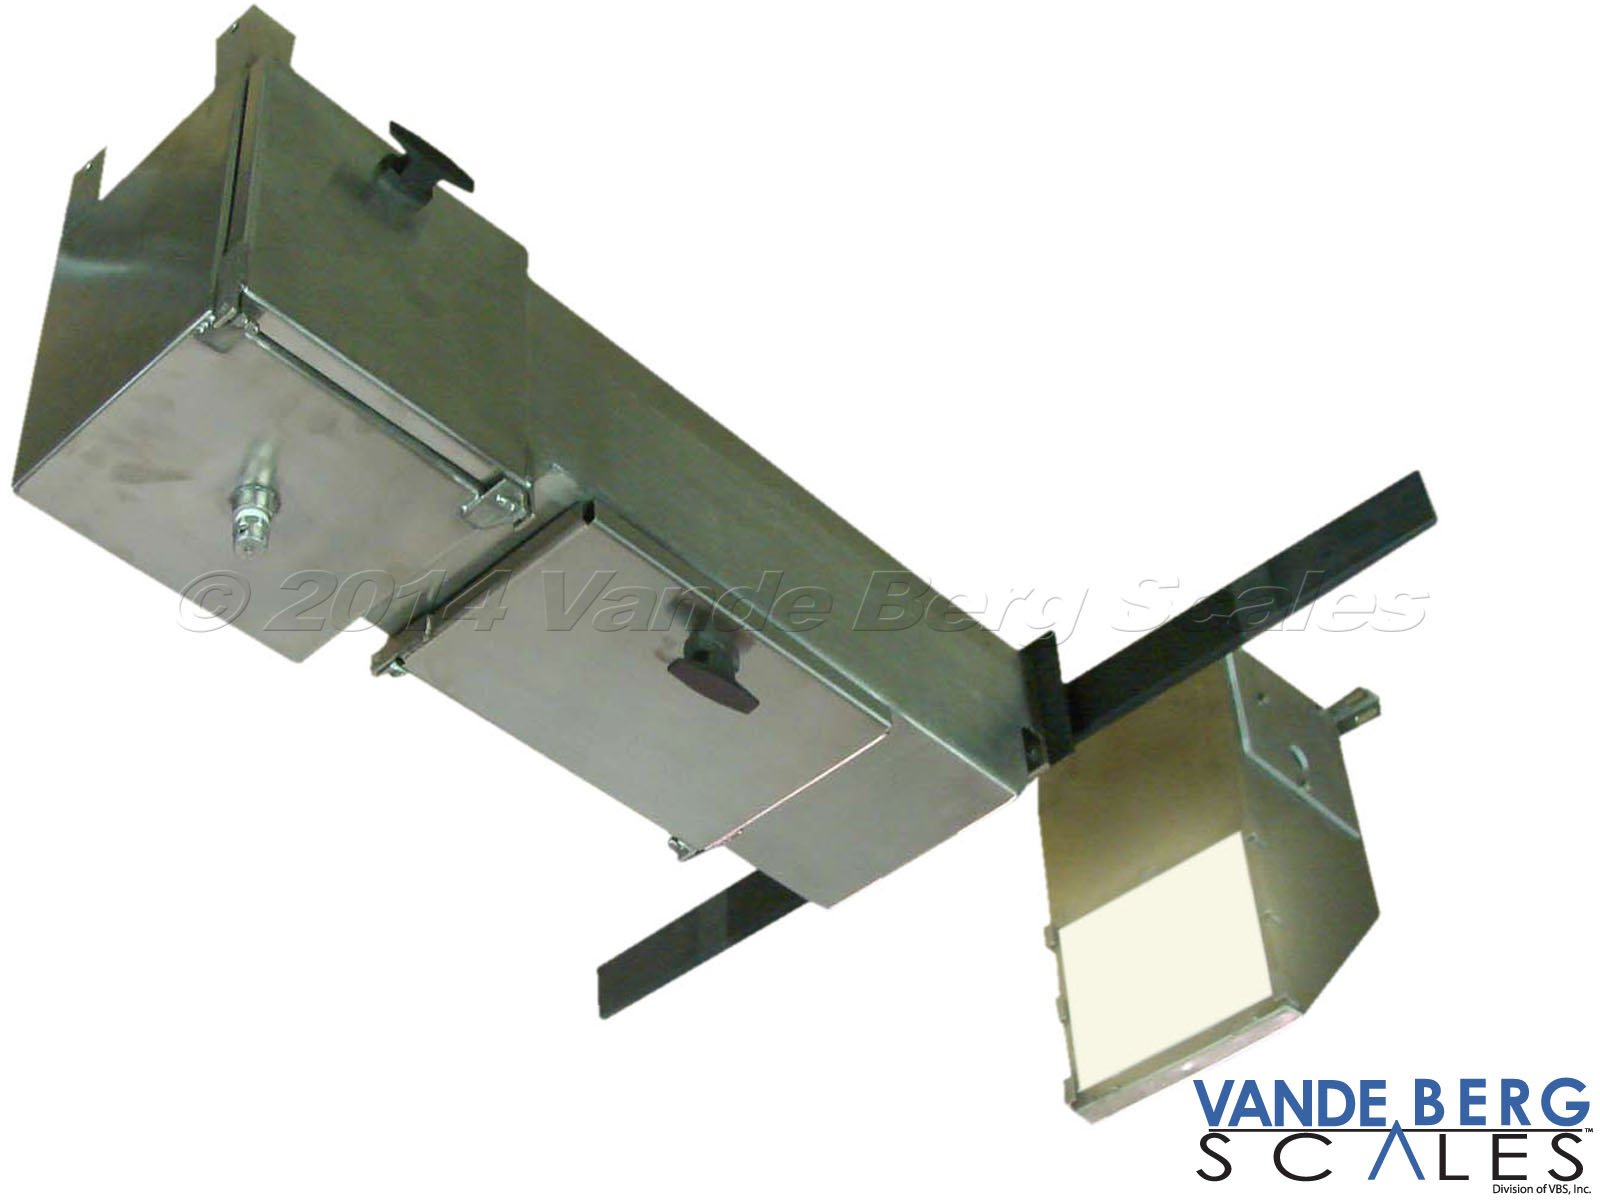 Trolley Vision system with back-light and camera. Watertight access panel ensures ease of maintenance access.